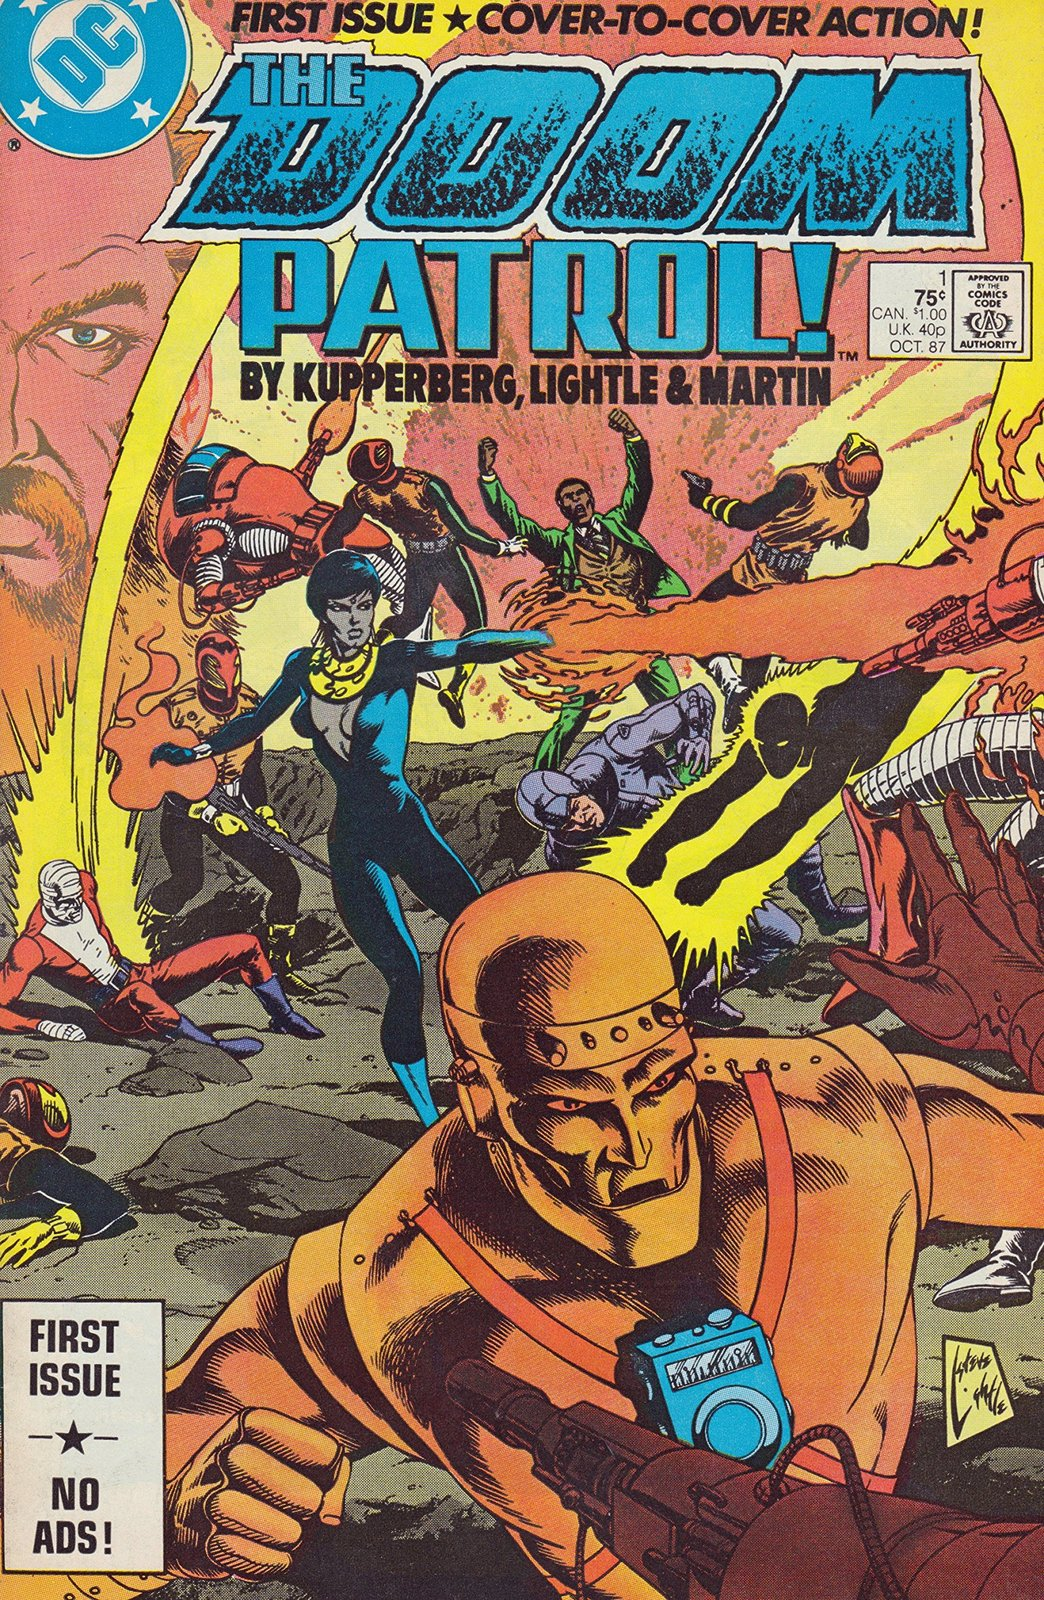 Doom Patrol #1 DC [Paperback] [Jan 01, 1987] Kupperberg ; Lightle ; Martin and I